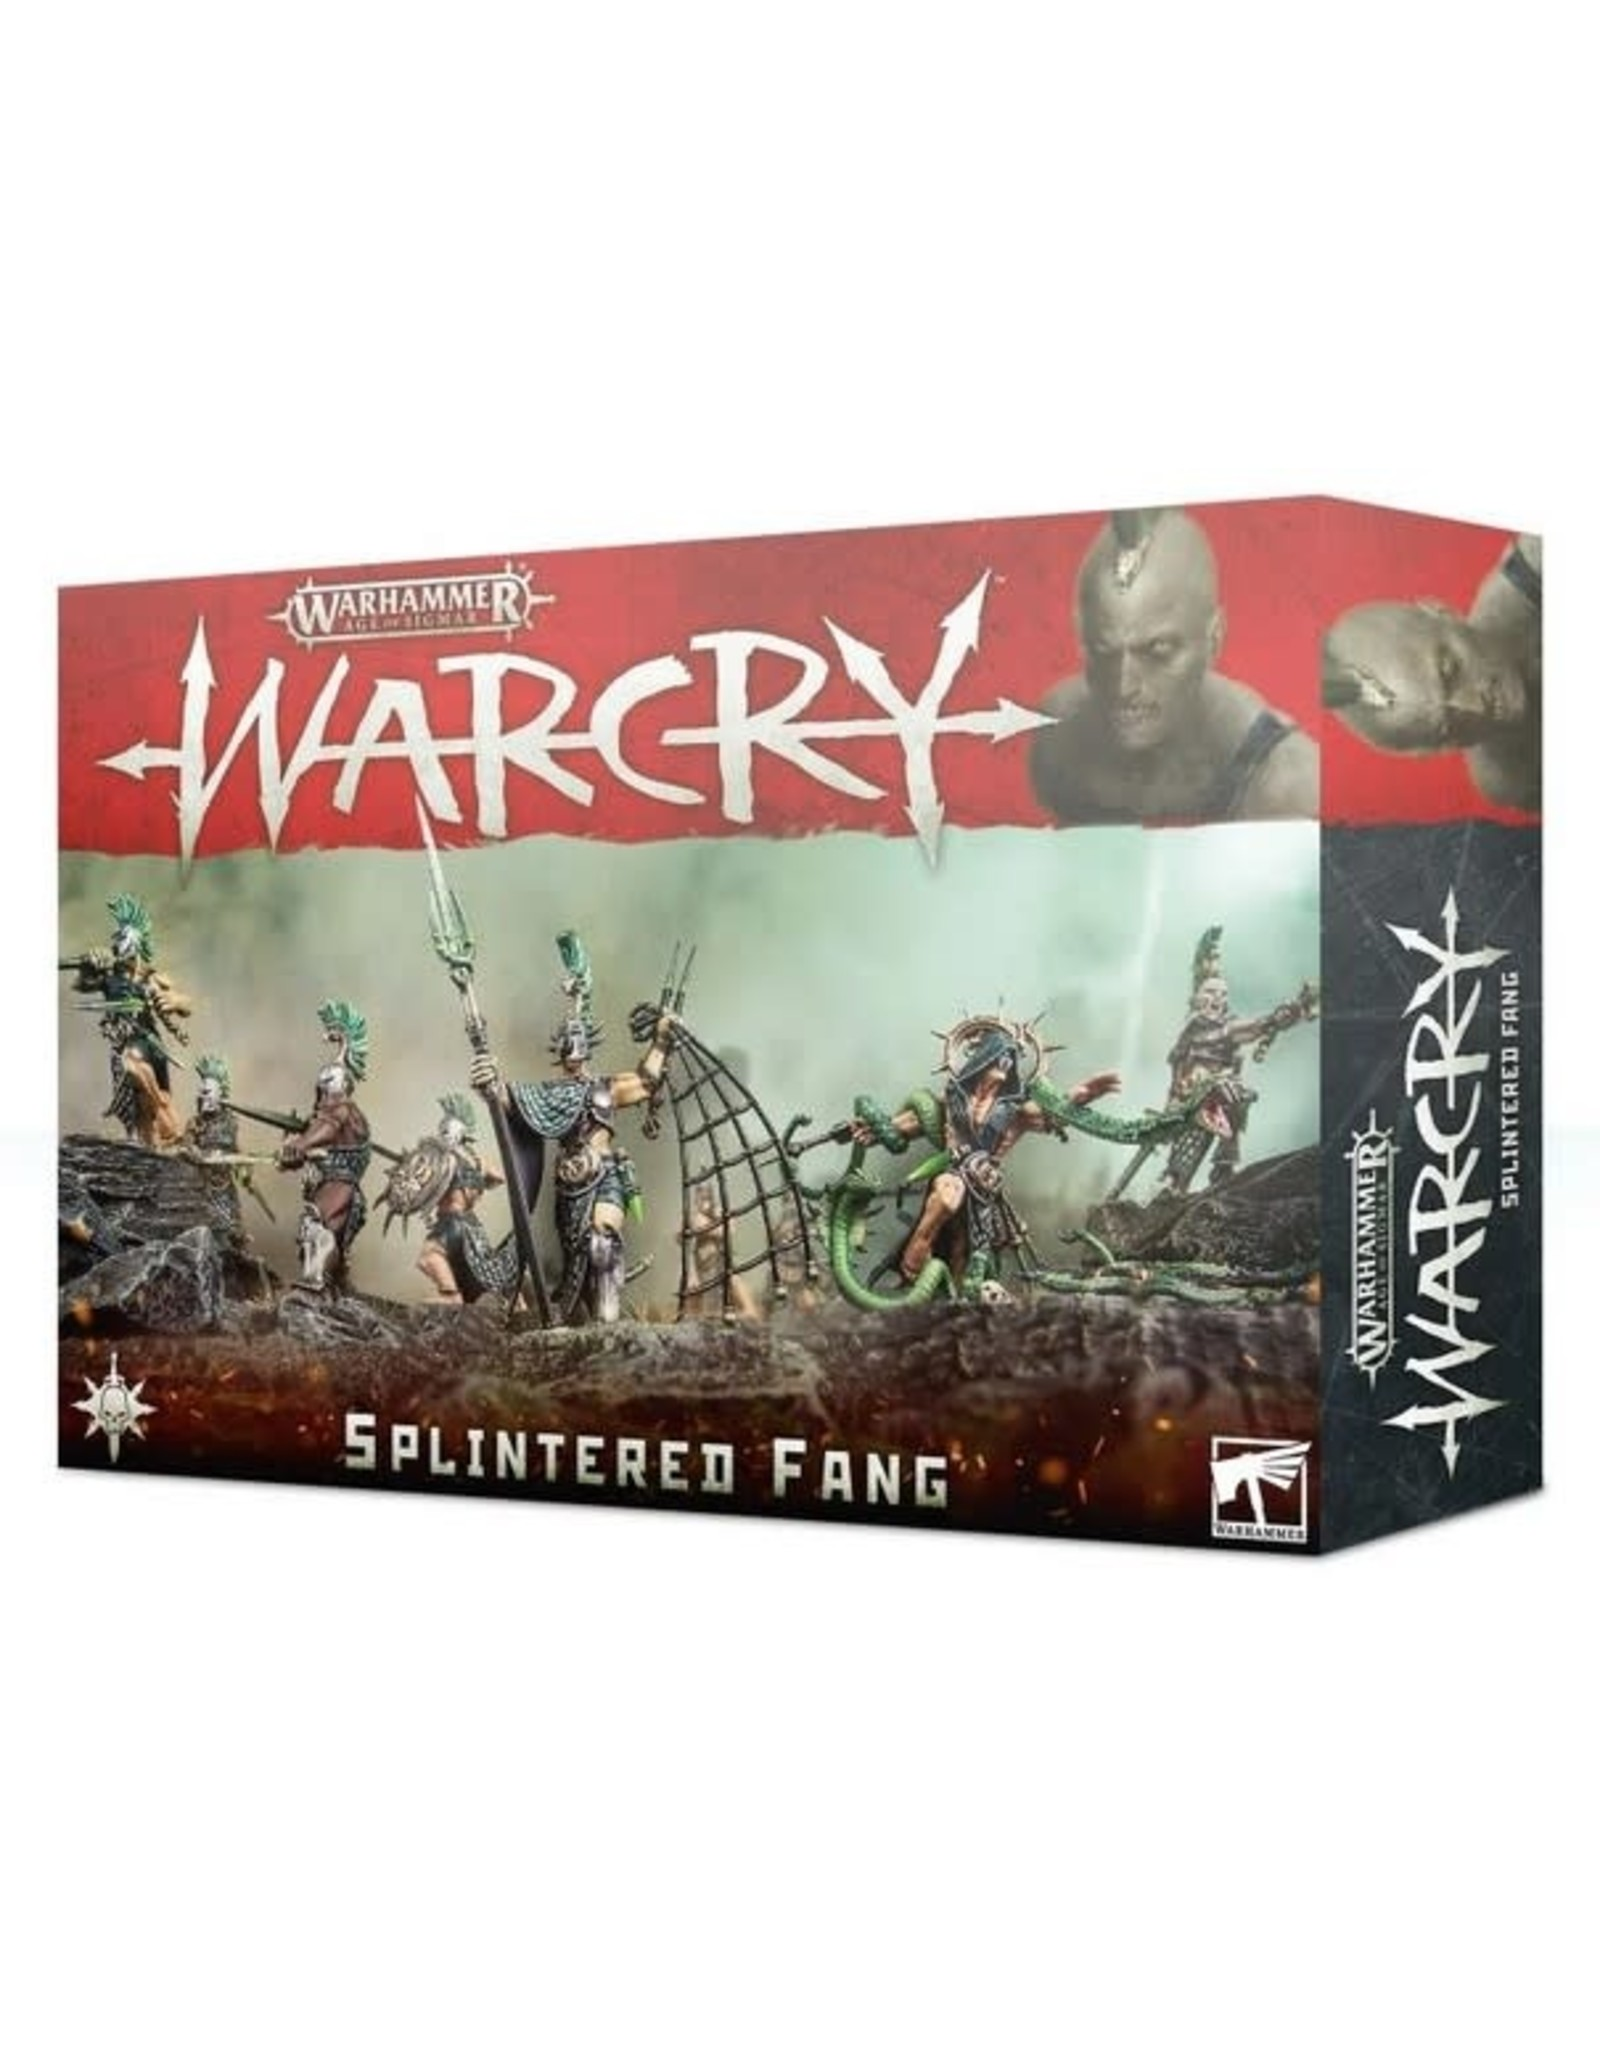 Warhammer AoS WHAoS Warcry - The Splintered Fang